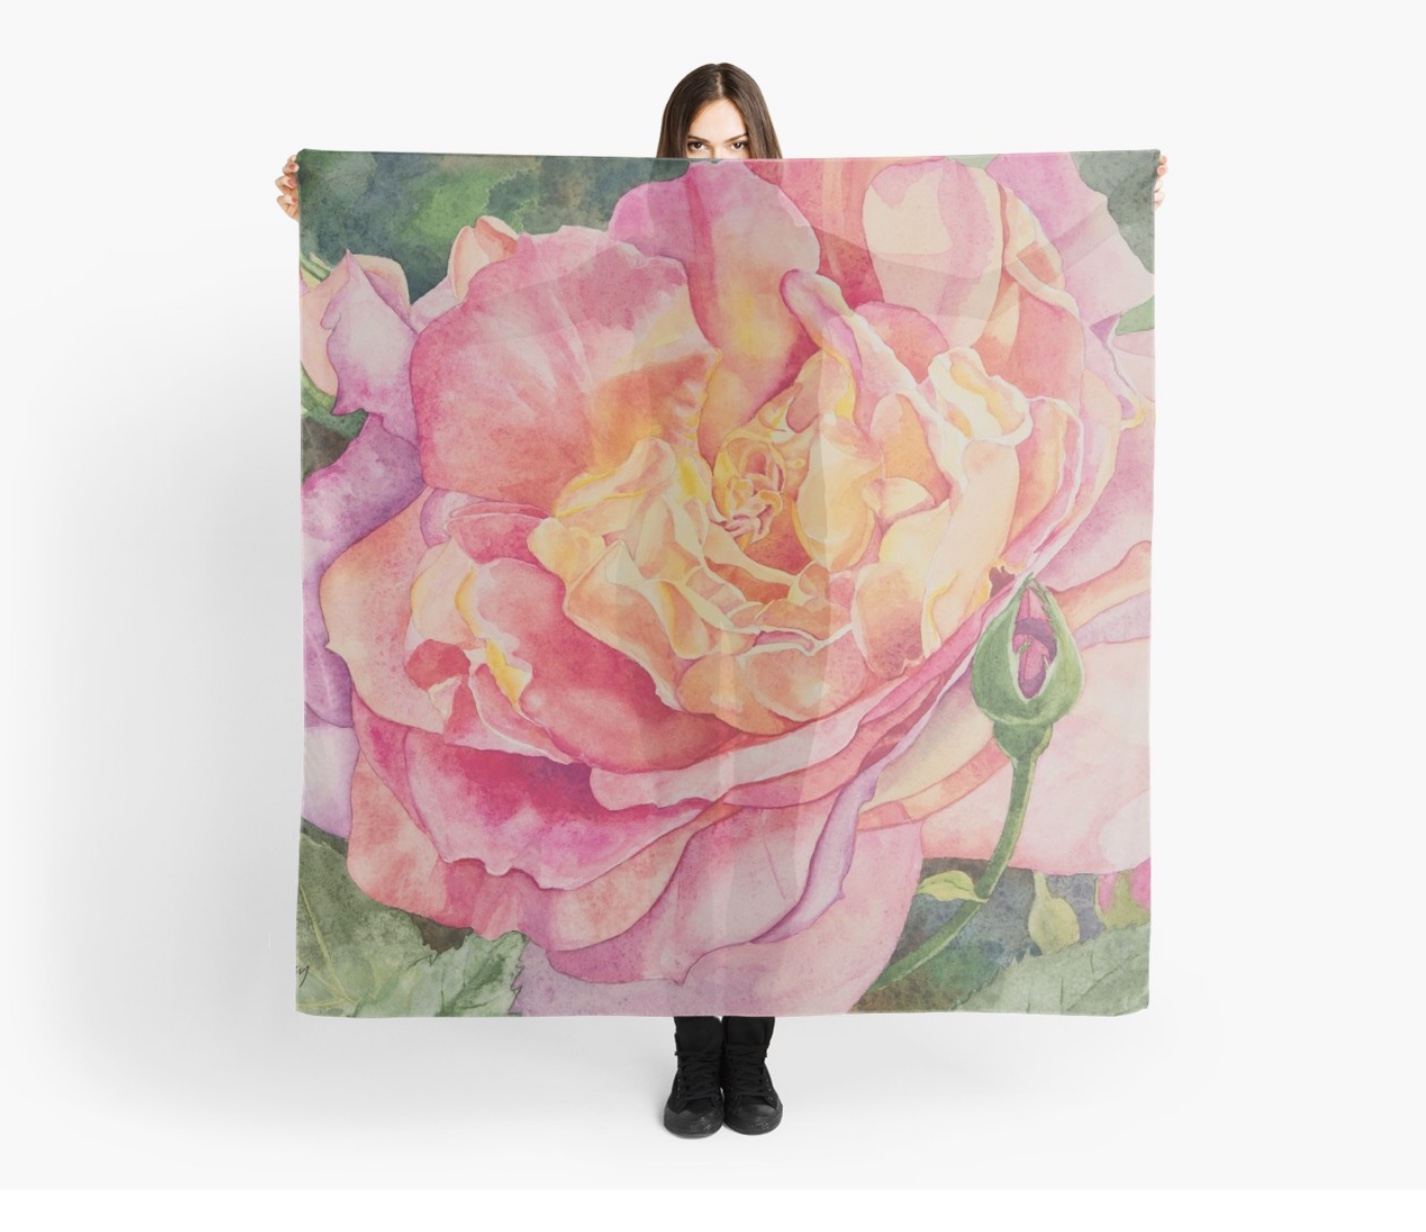 New! Elizabeth Rose  - This design is available in men's, women's and kids' apparel, home decor and gift items.